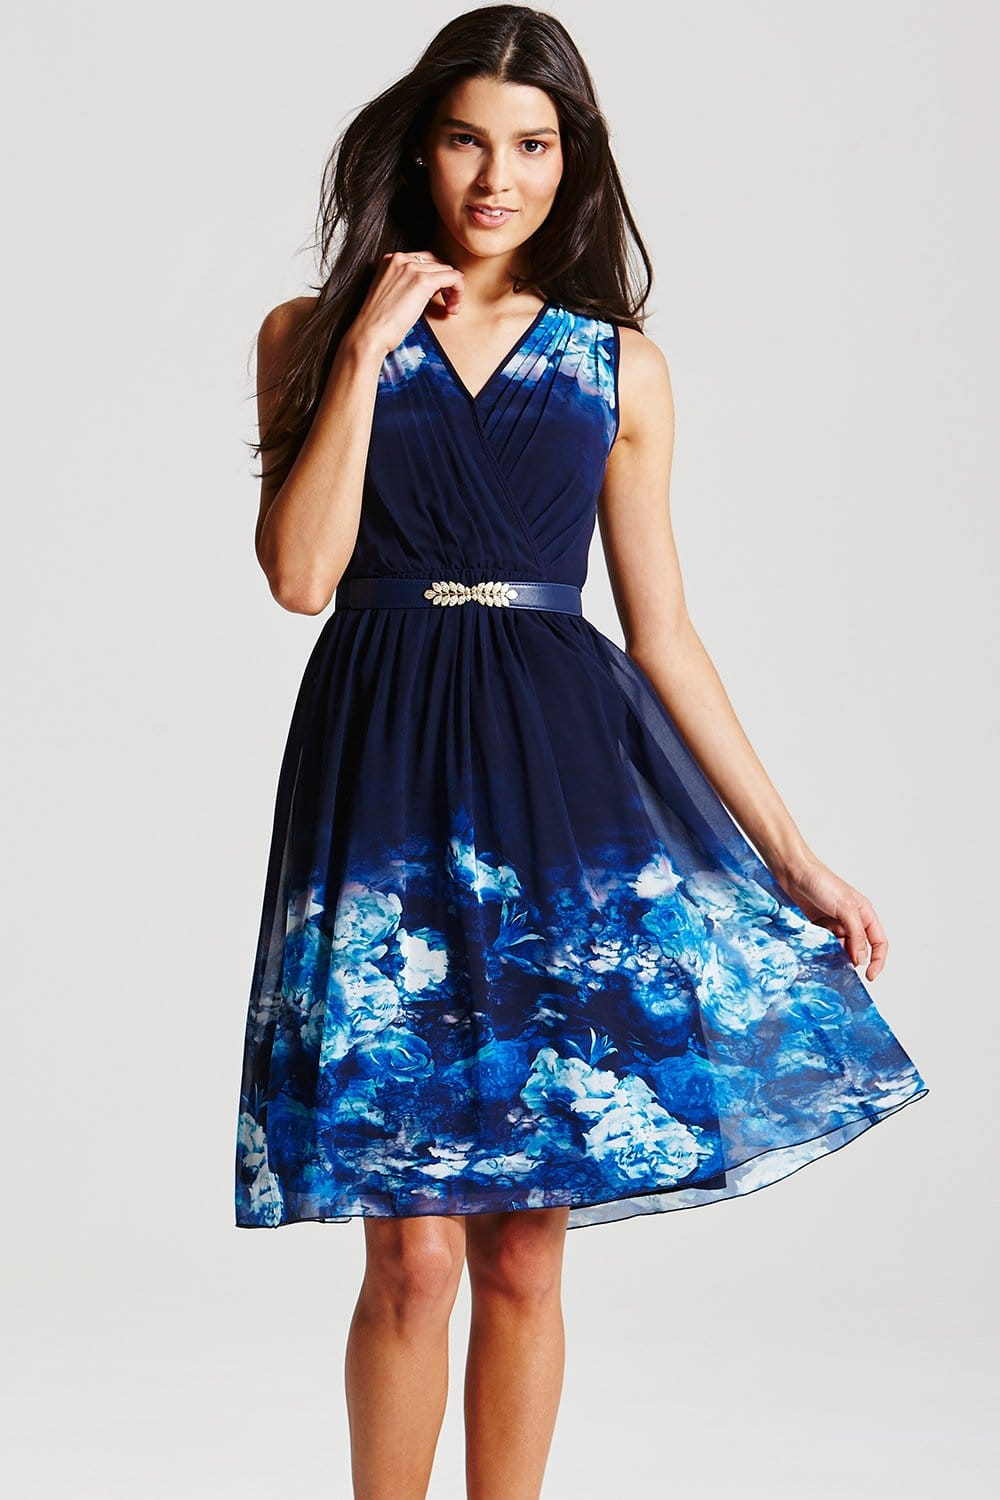 Blue Floral Crossover Dress From Little Mistress Uk